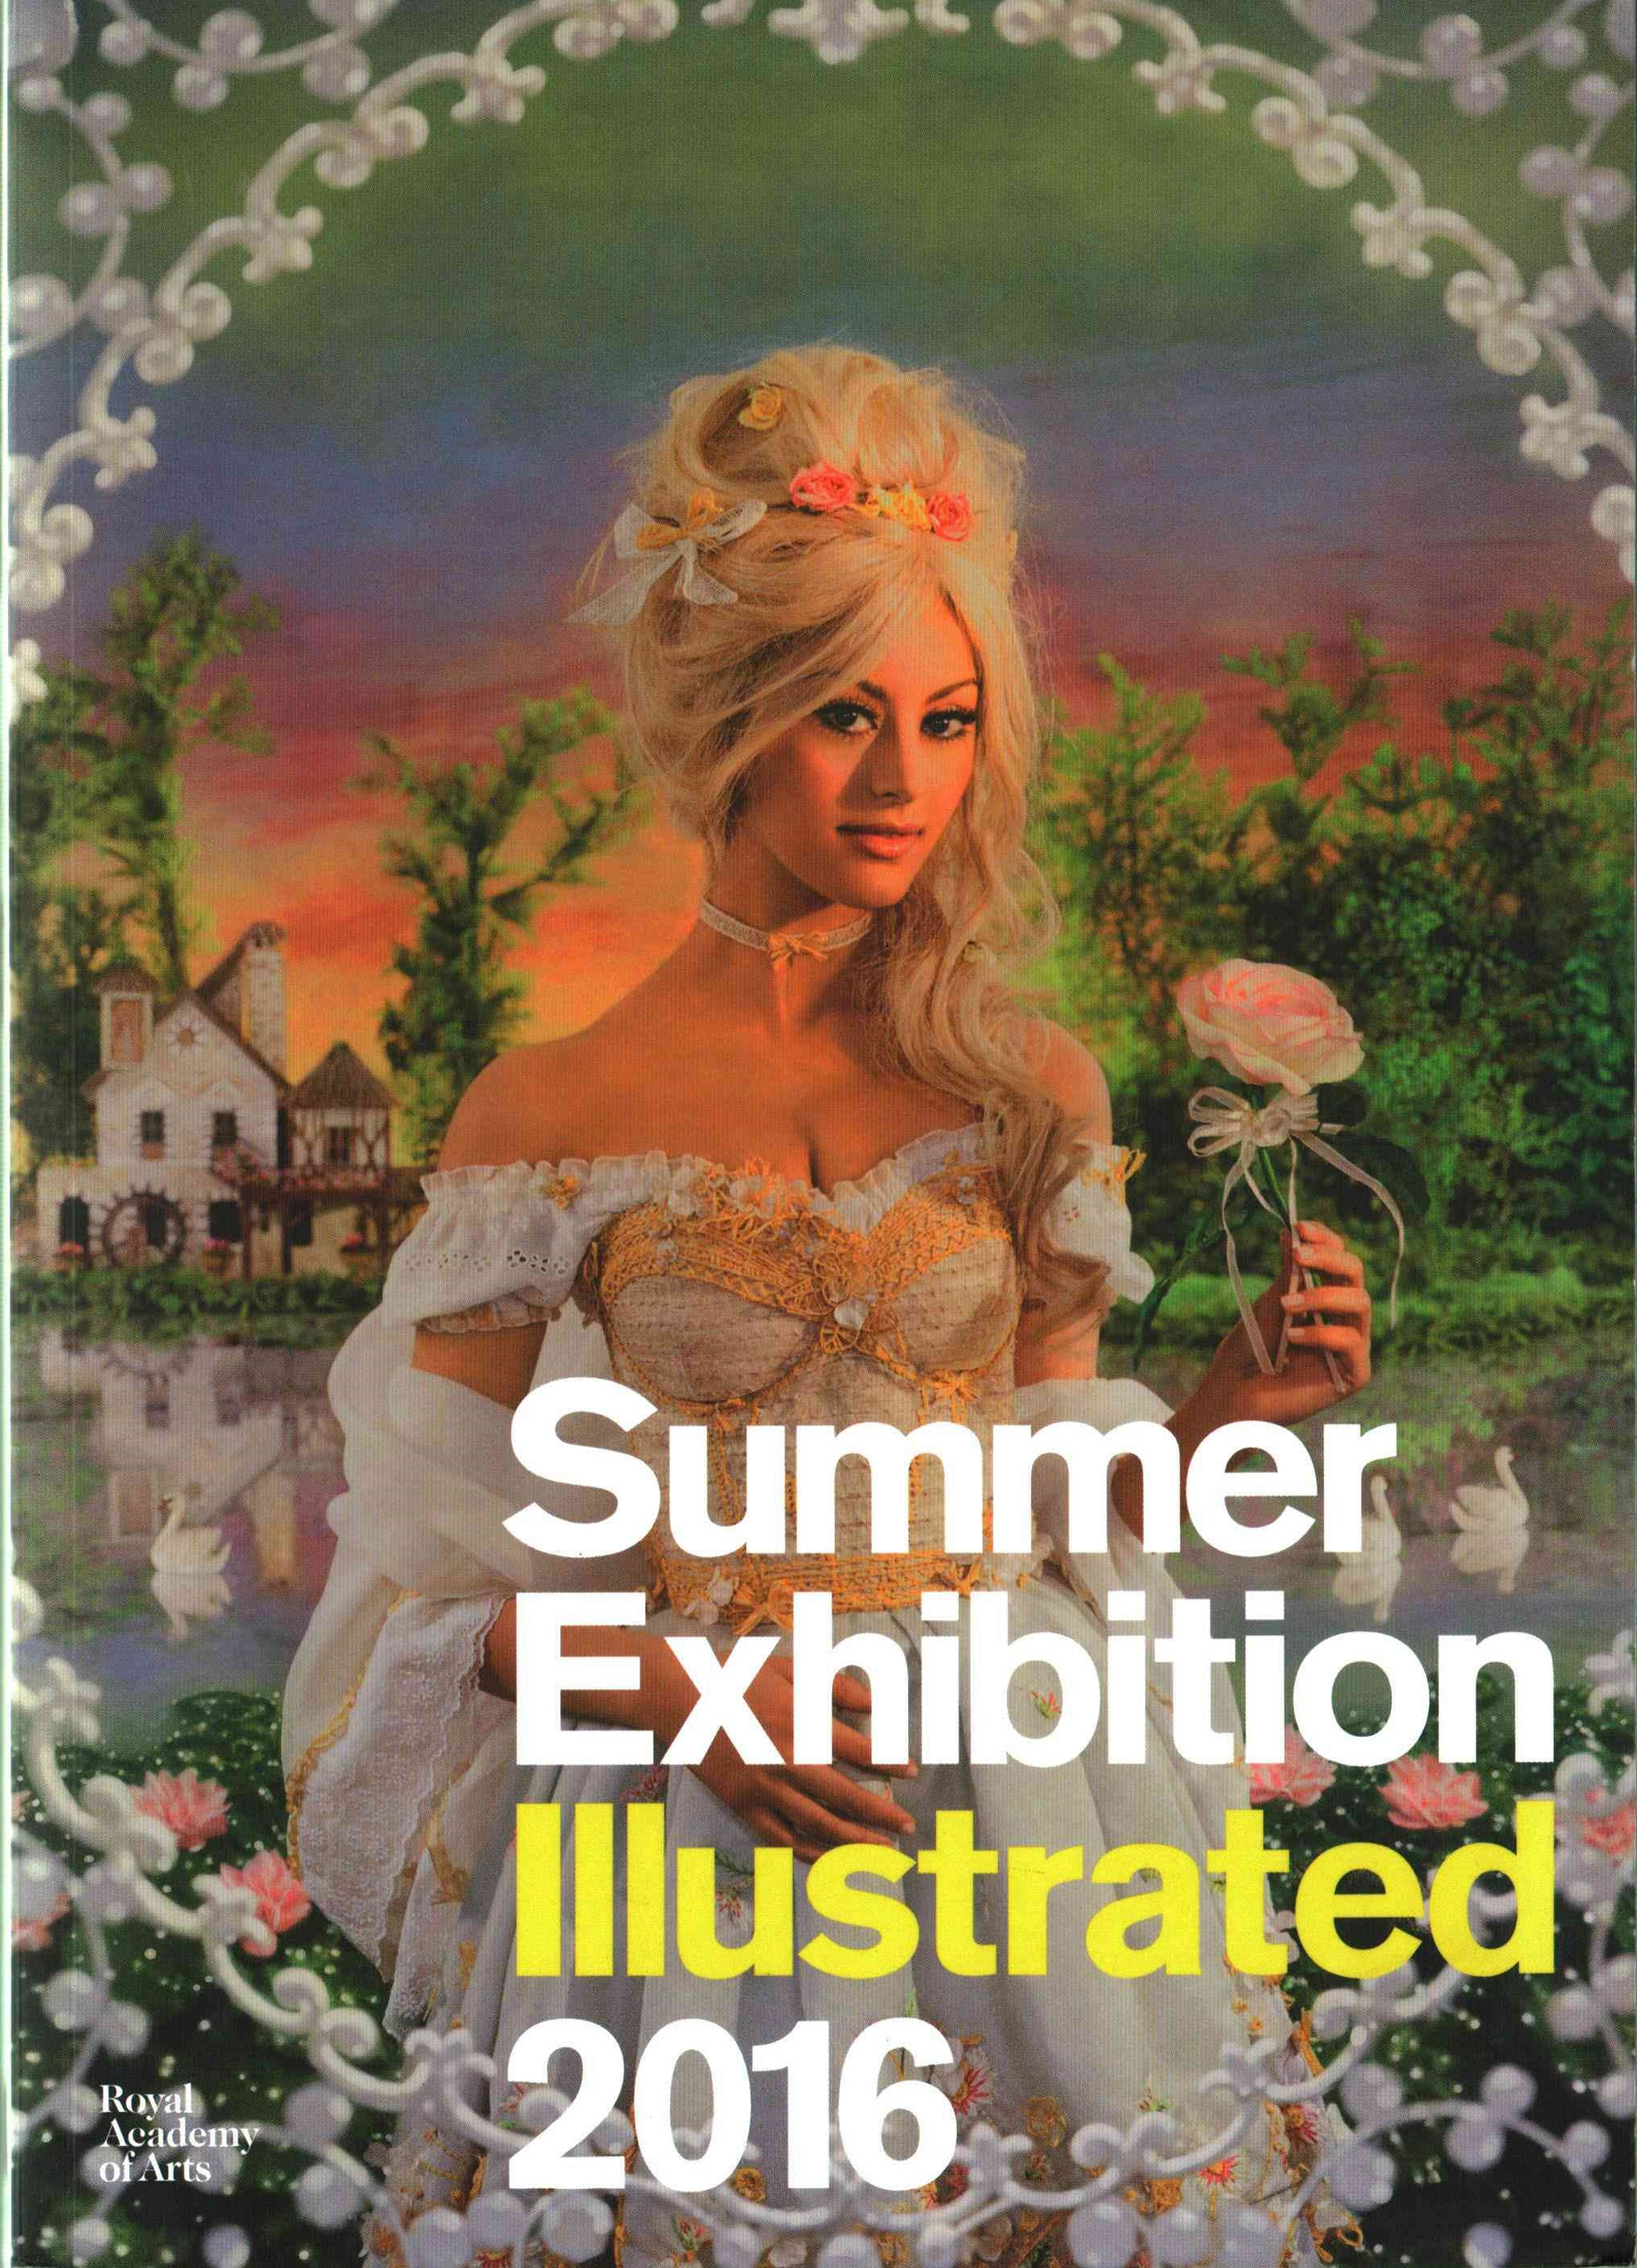 Summer Exhib. Illustrated 2016